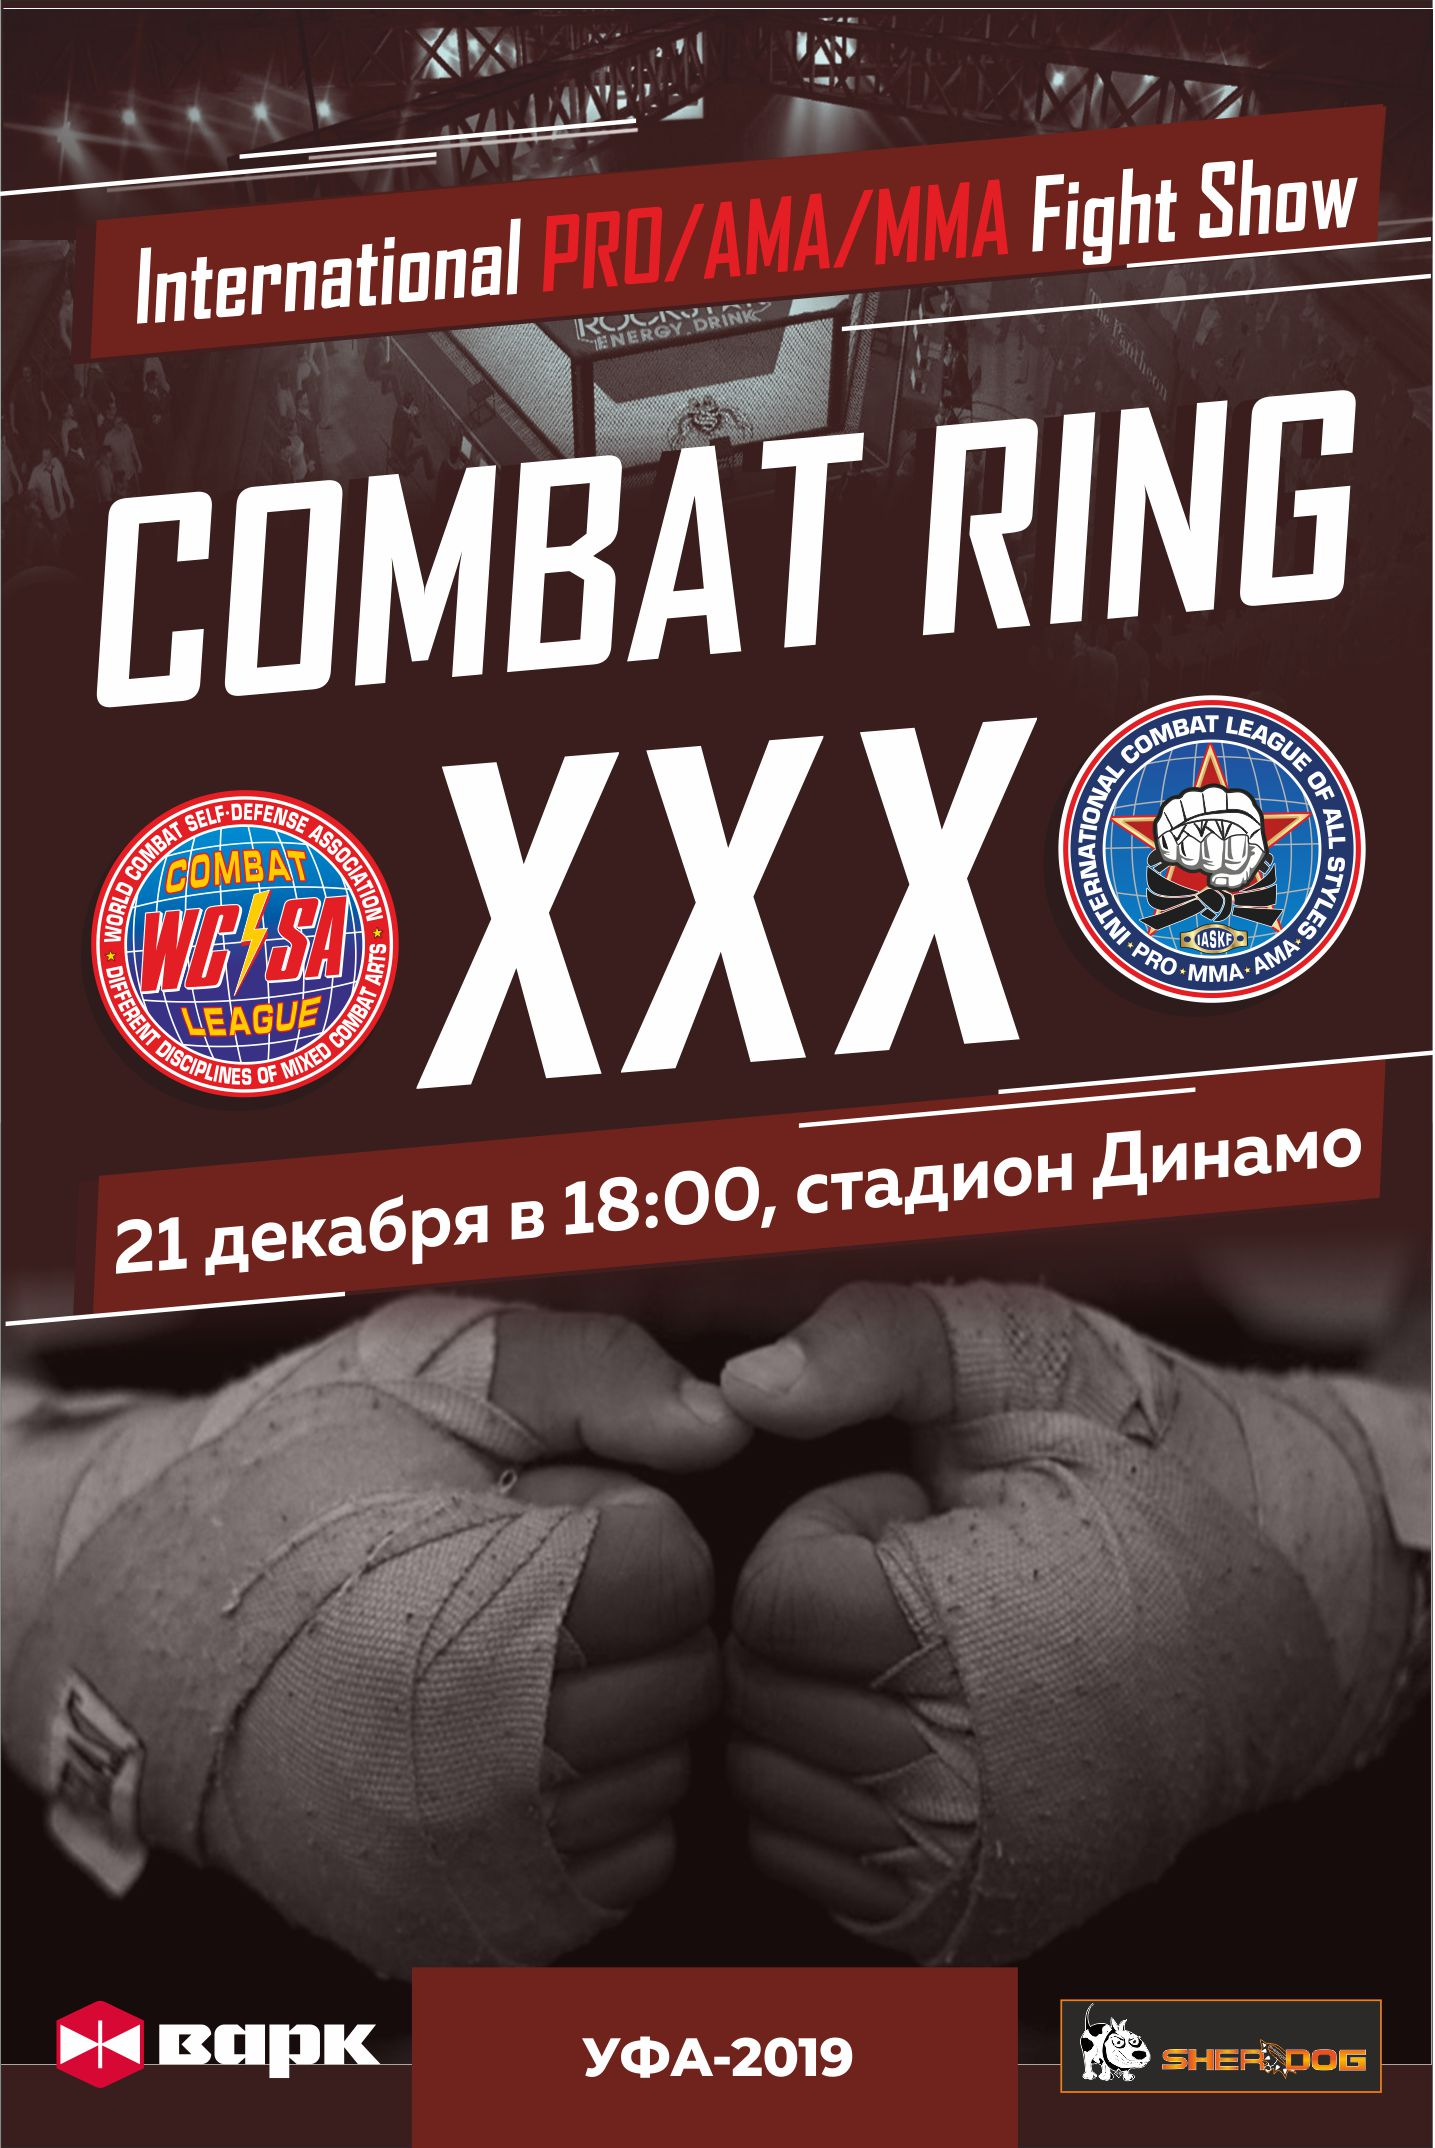 http://combatsd.ru/images/upload/Combat%20Ring%20XXX.jpg